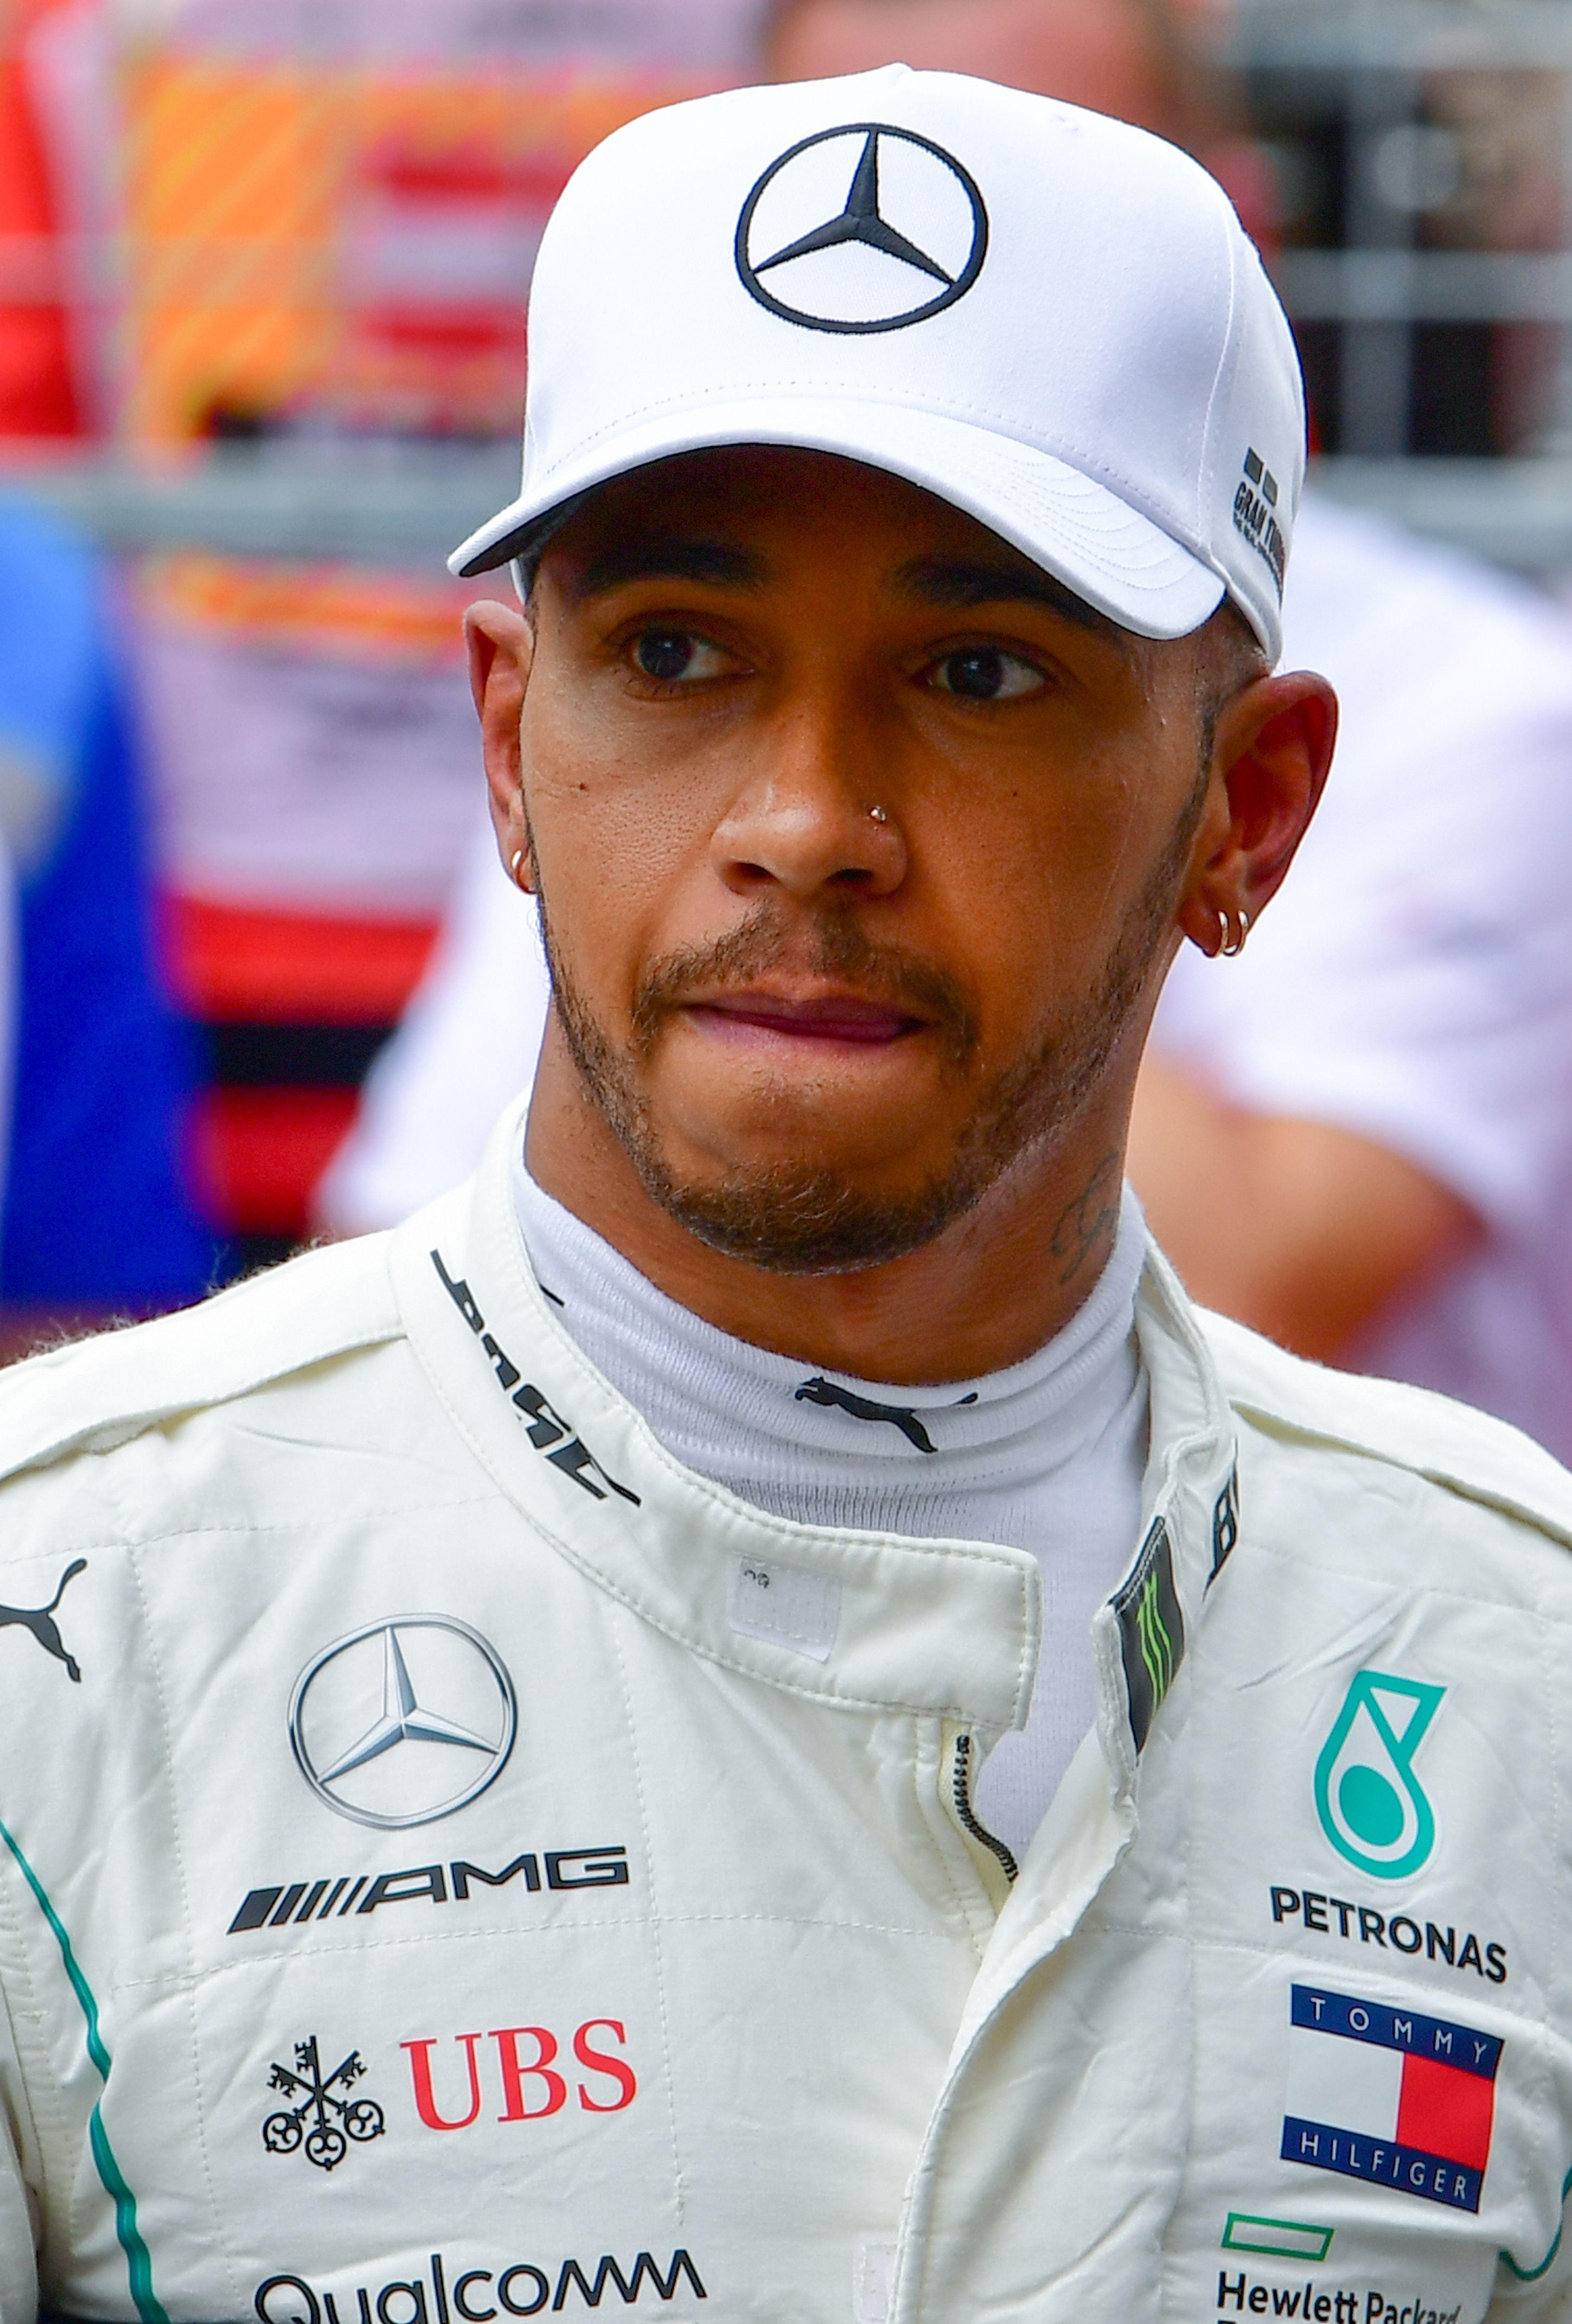 Lewis Hamilton endured a difficult day in Spielberg as he failed to finish his first race in over two years